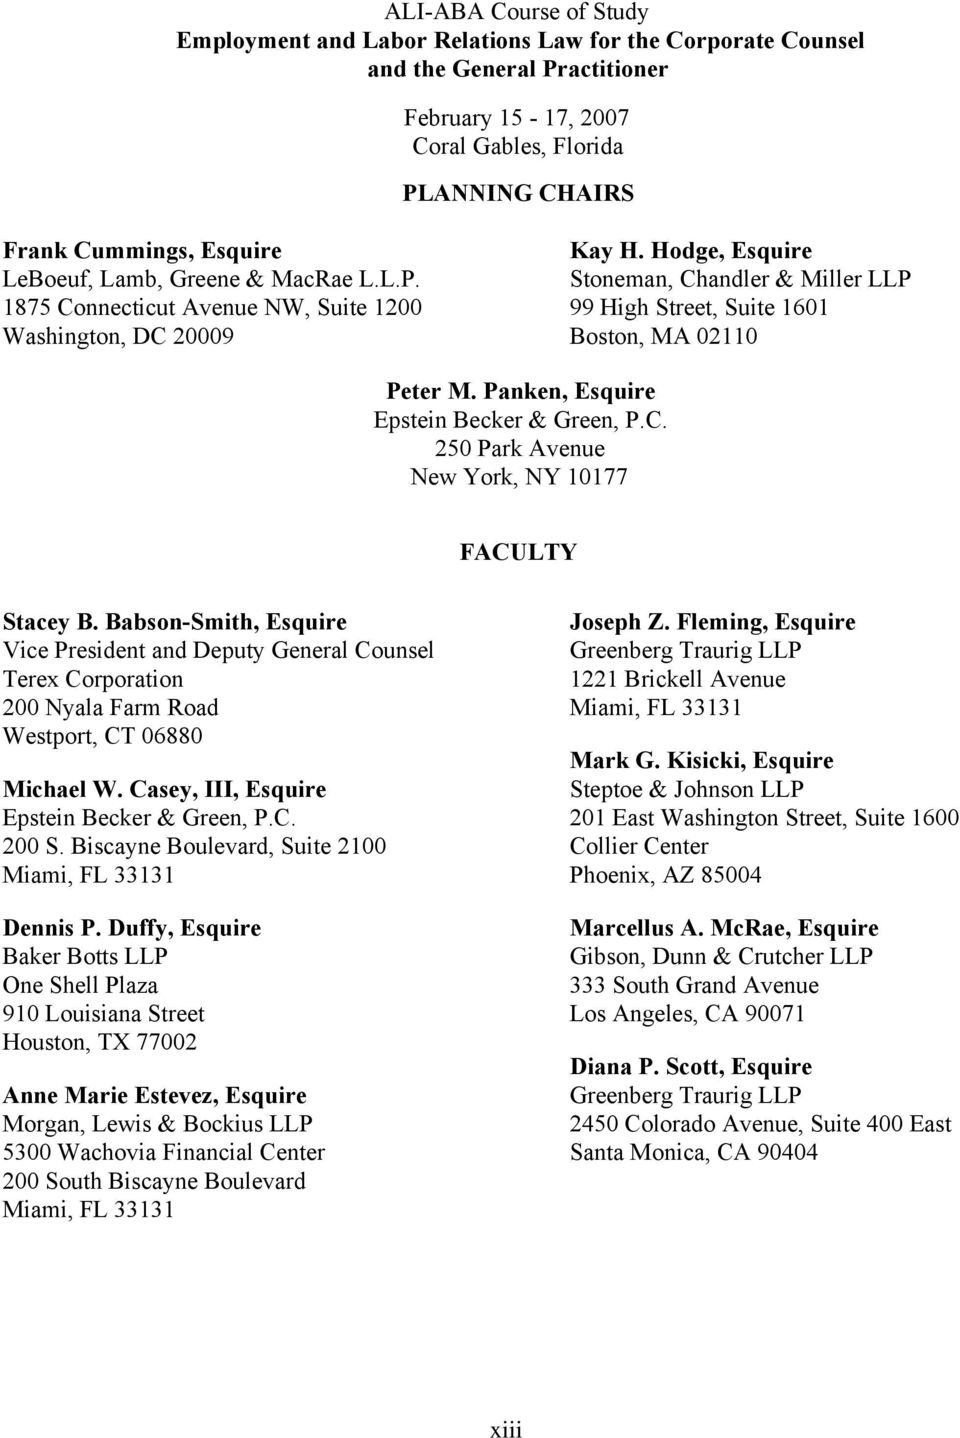 Hodge, Esquire Stoneman, Chandler & Miller LLP 99 High Street, Suite 1601 Boston, MA 02110 Peter M. Panken, Esquire Epstein Becker & Green, P.C. 250 Park Avenue New York, NY 10177 FACULTY Stacey B.